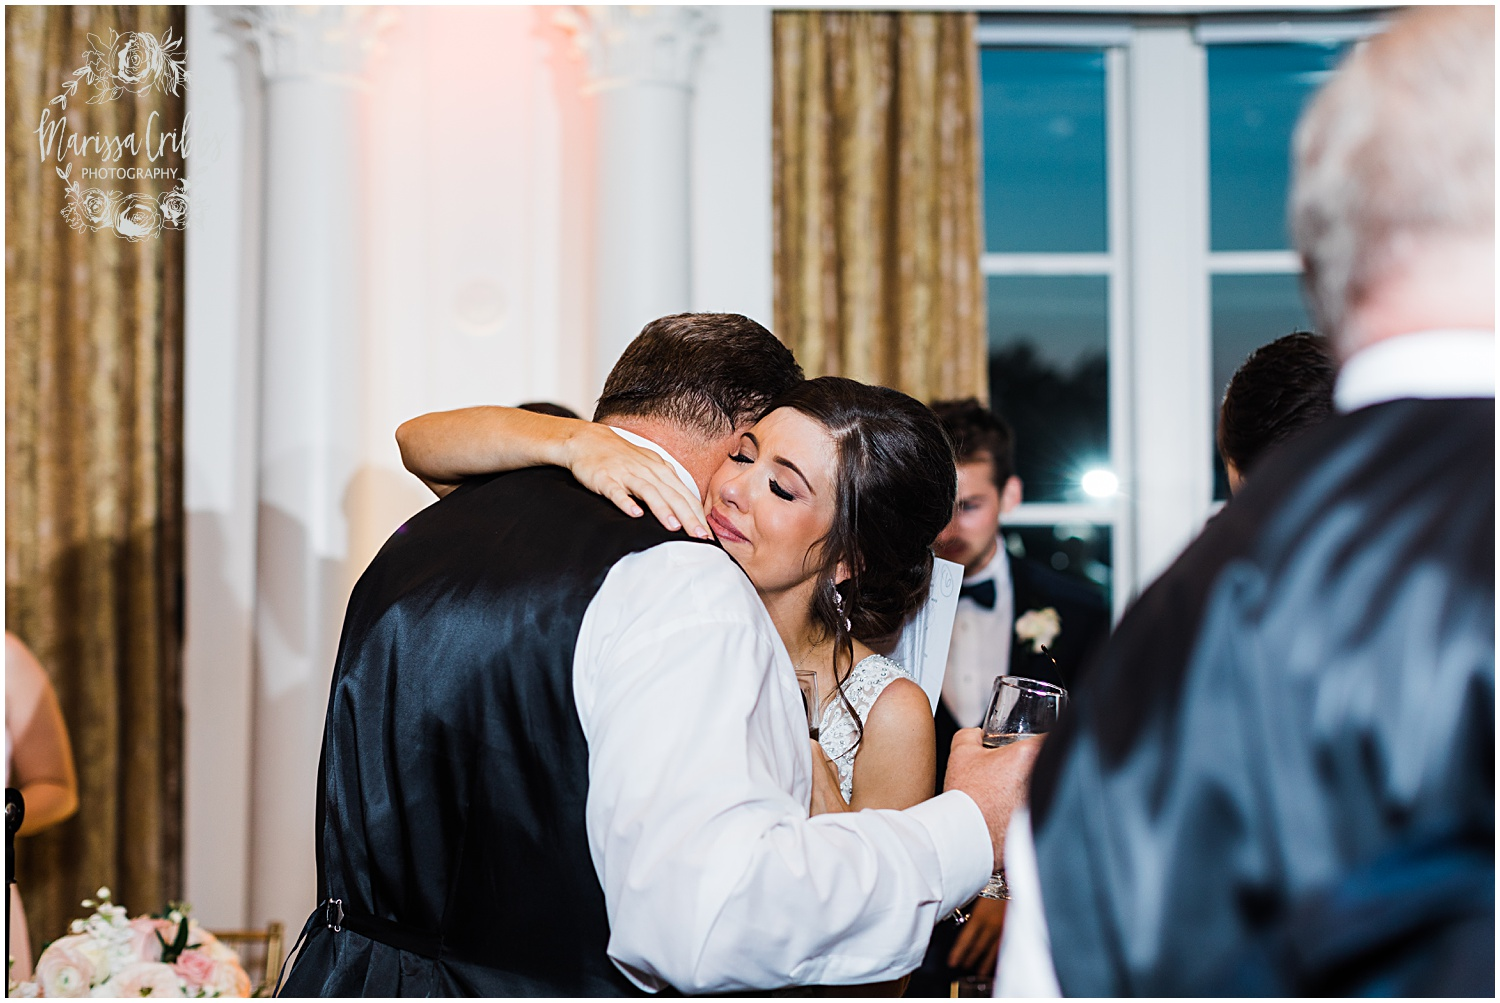 MEGAN & DEREK WEDDING BLOG | MARISSA CRIBBS PHOTOGRAPHY_8227.jpg